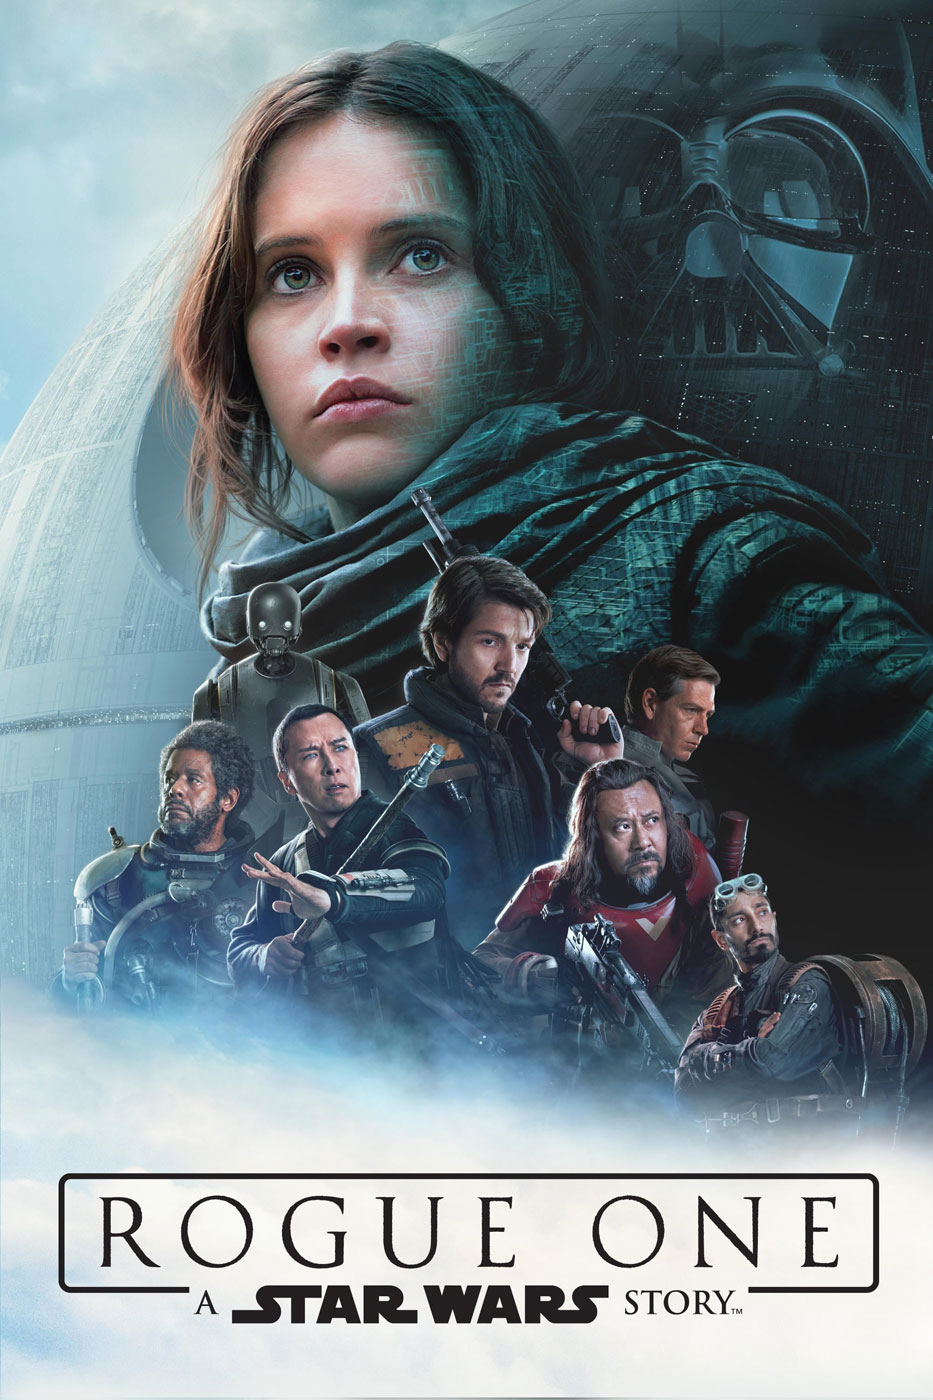 Película - Rogue One: A Star Wars Story Gareth Edwards (2016)